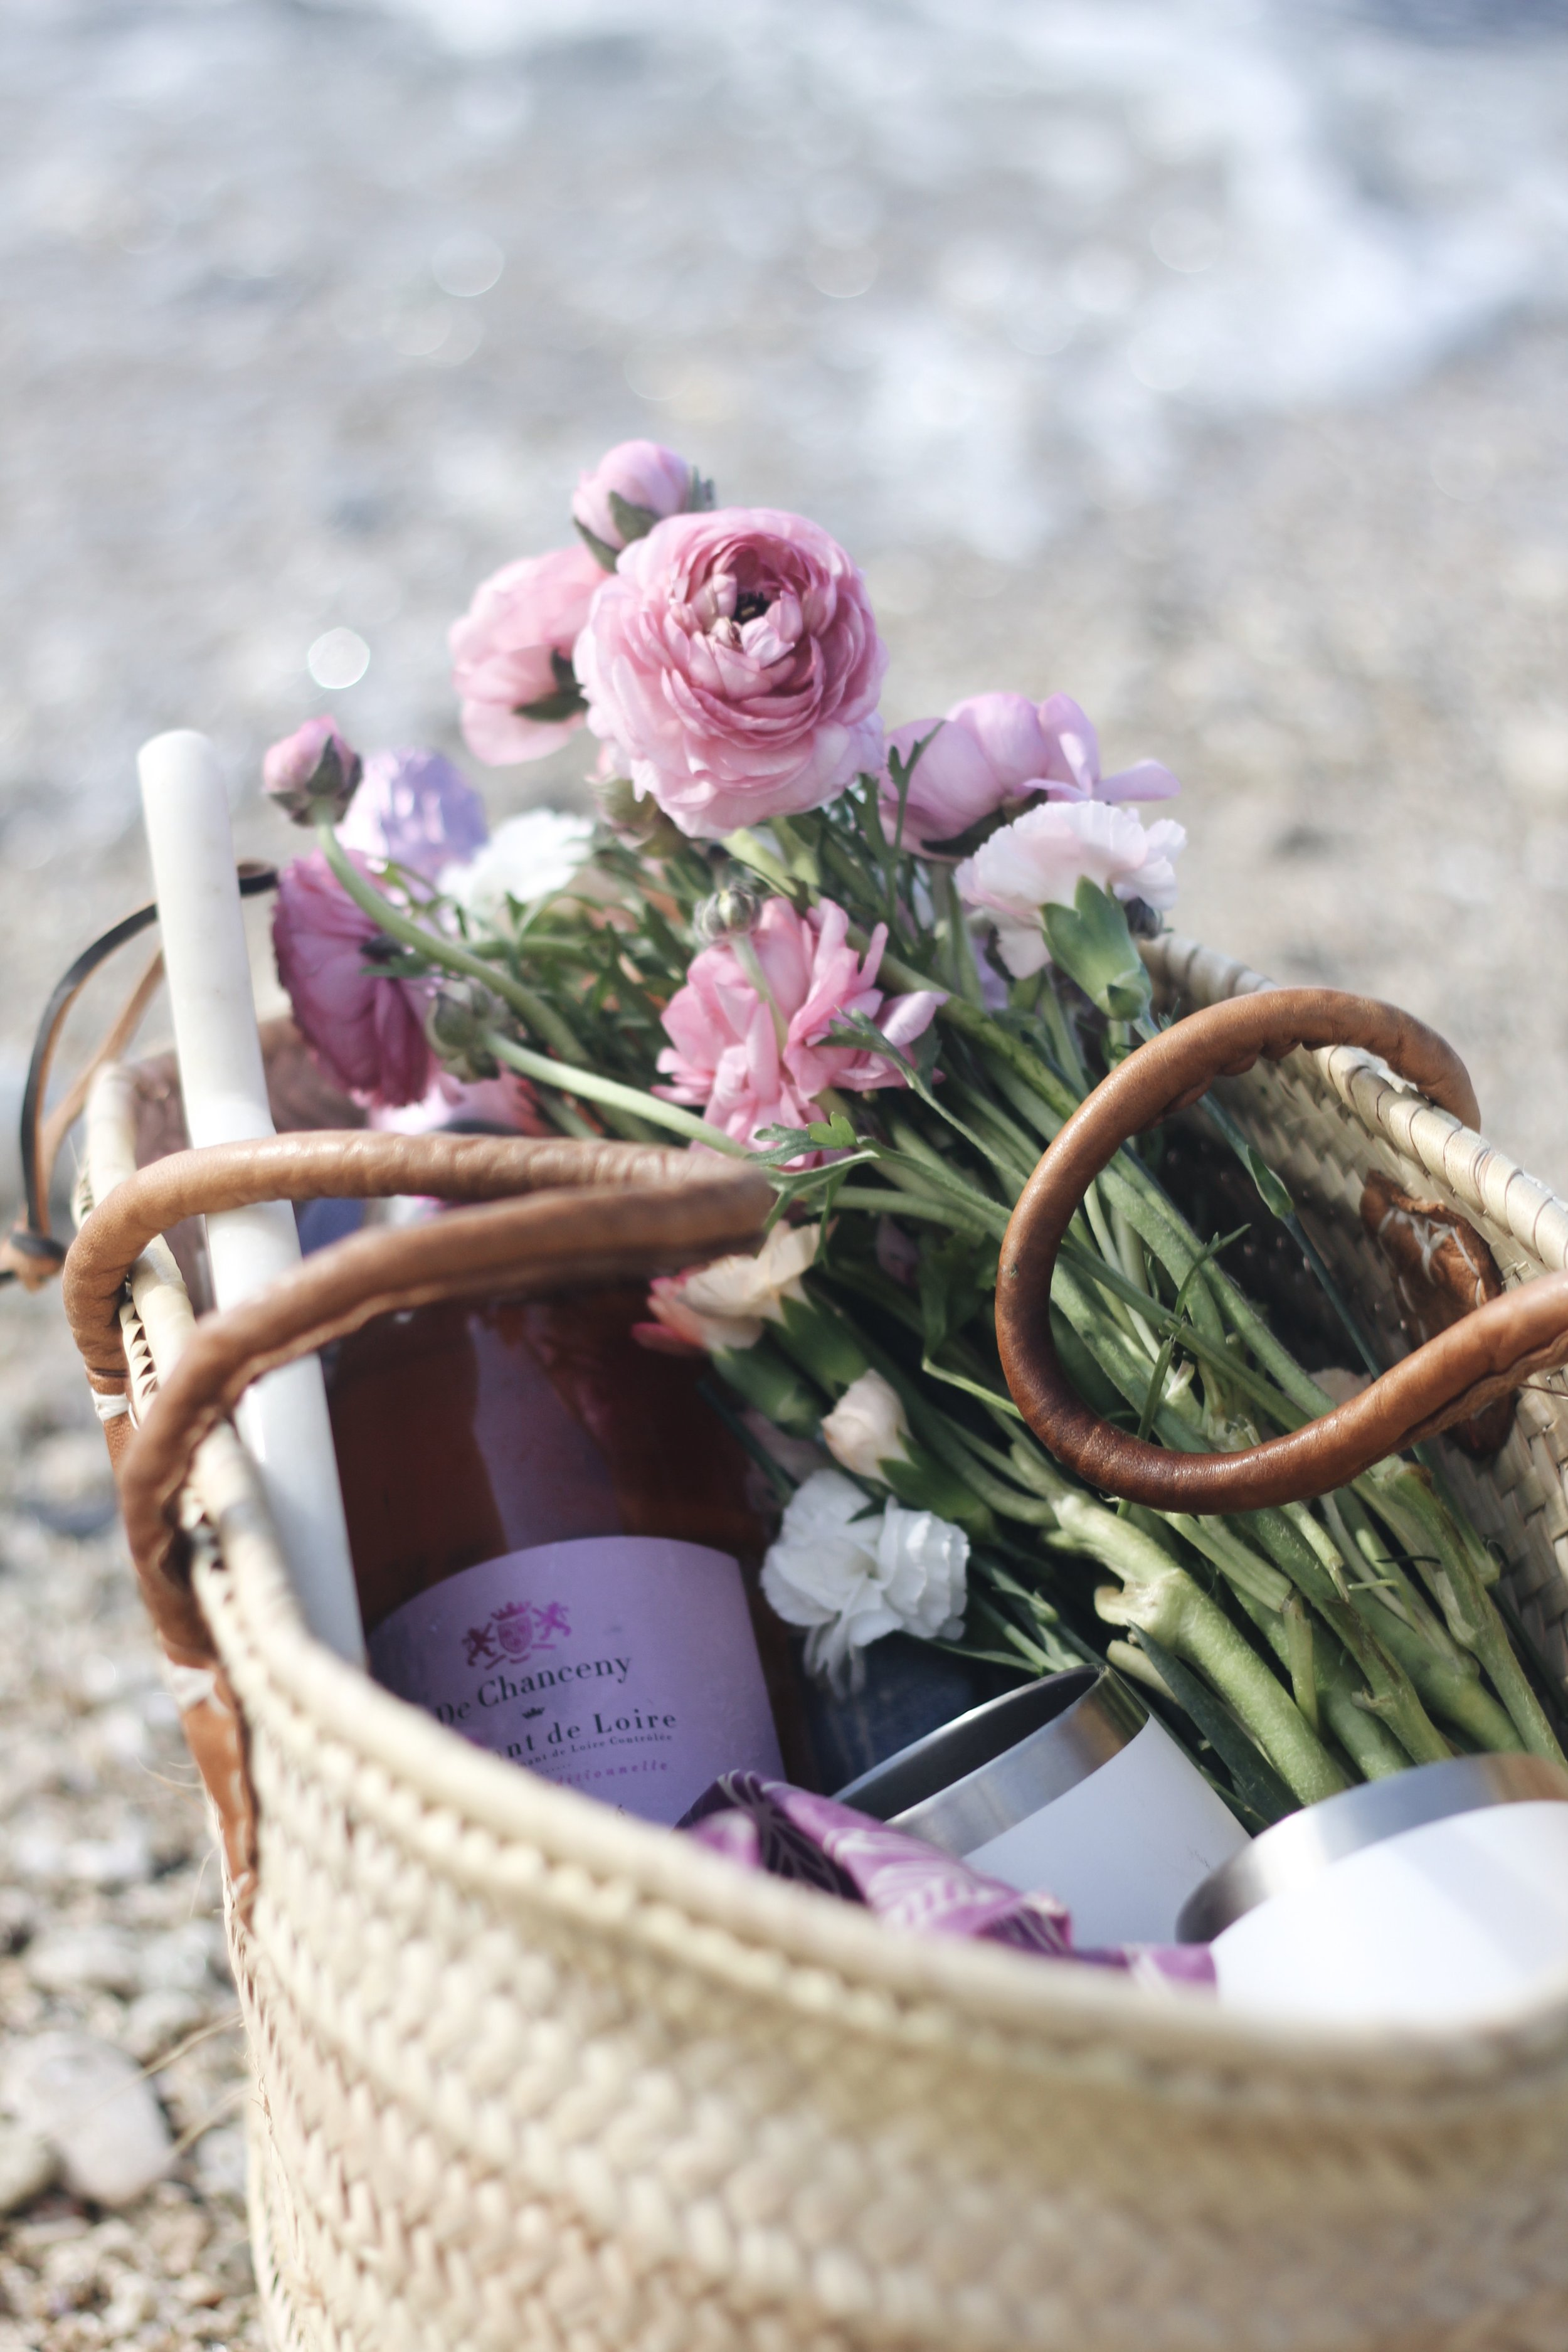 How_to_choose_a_rosé_wine